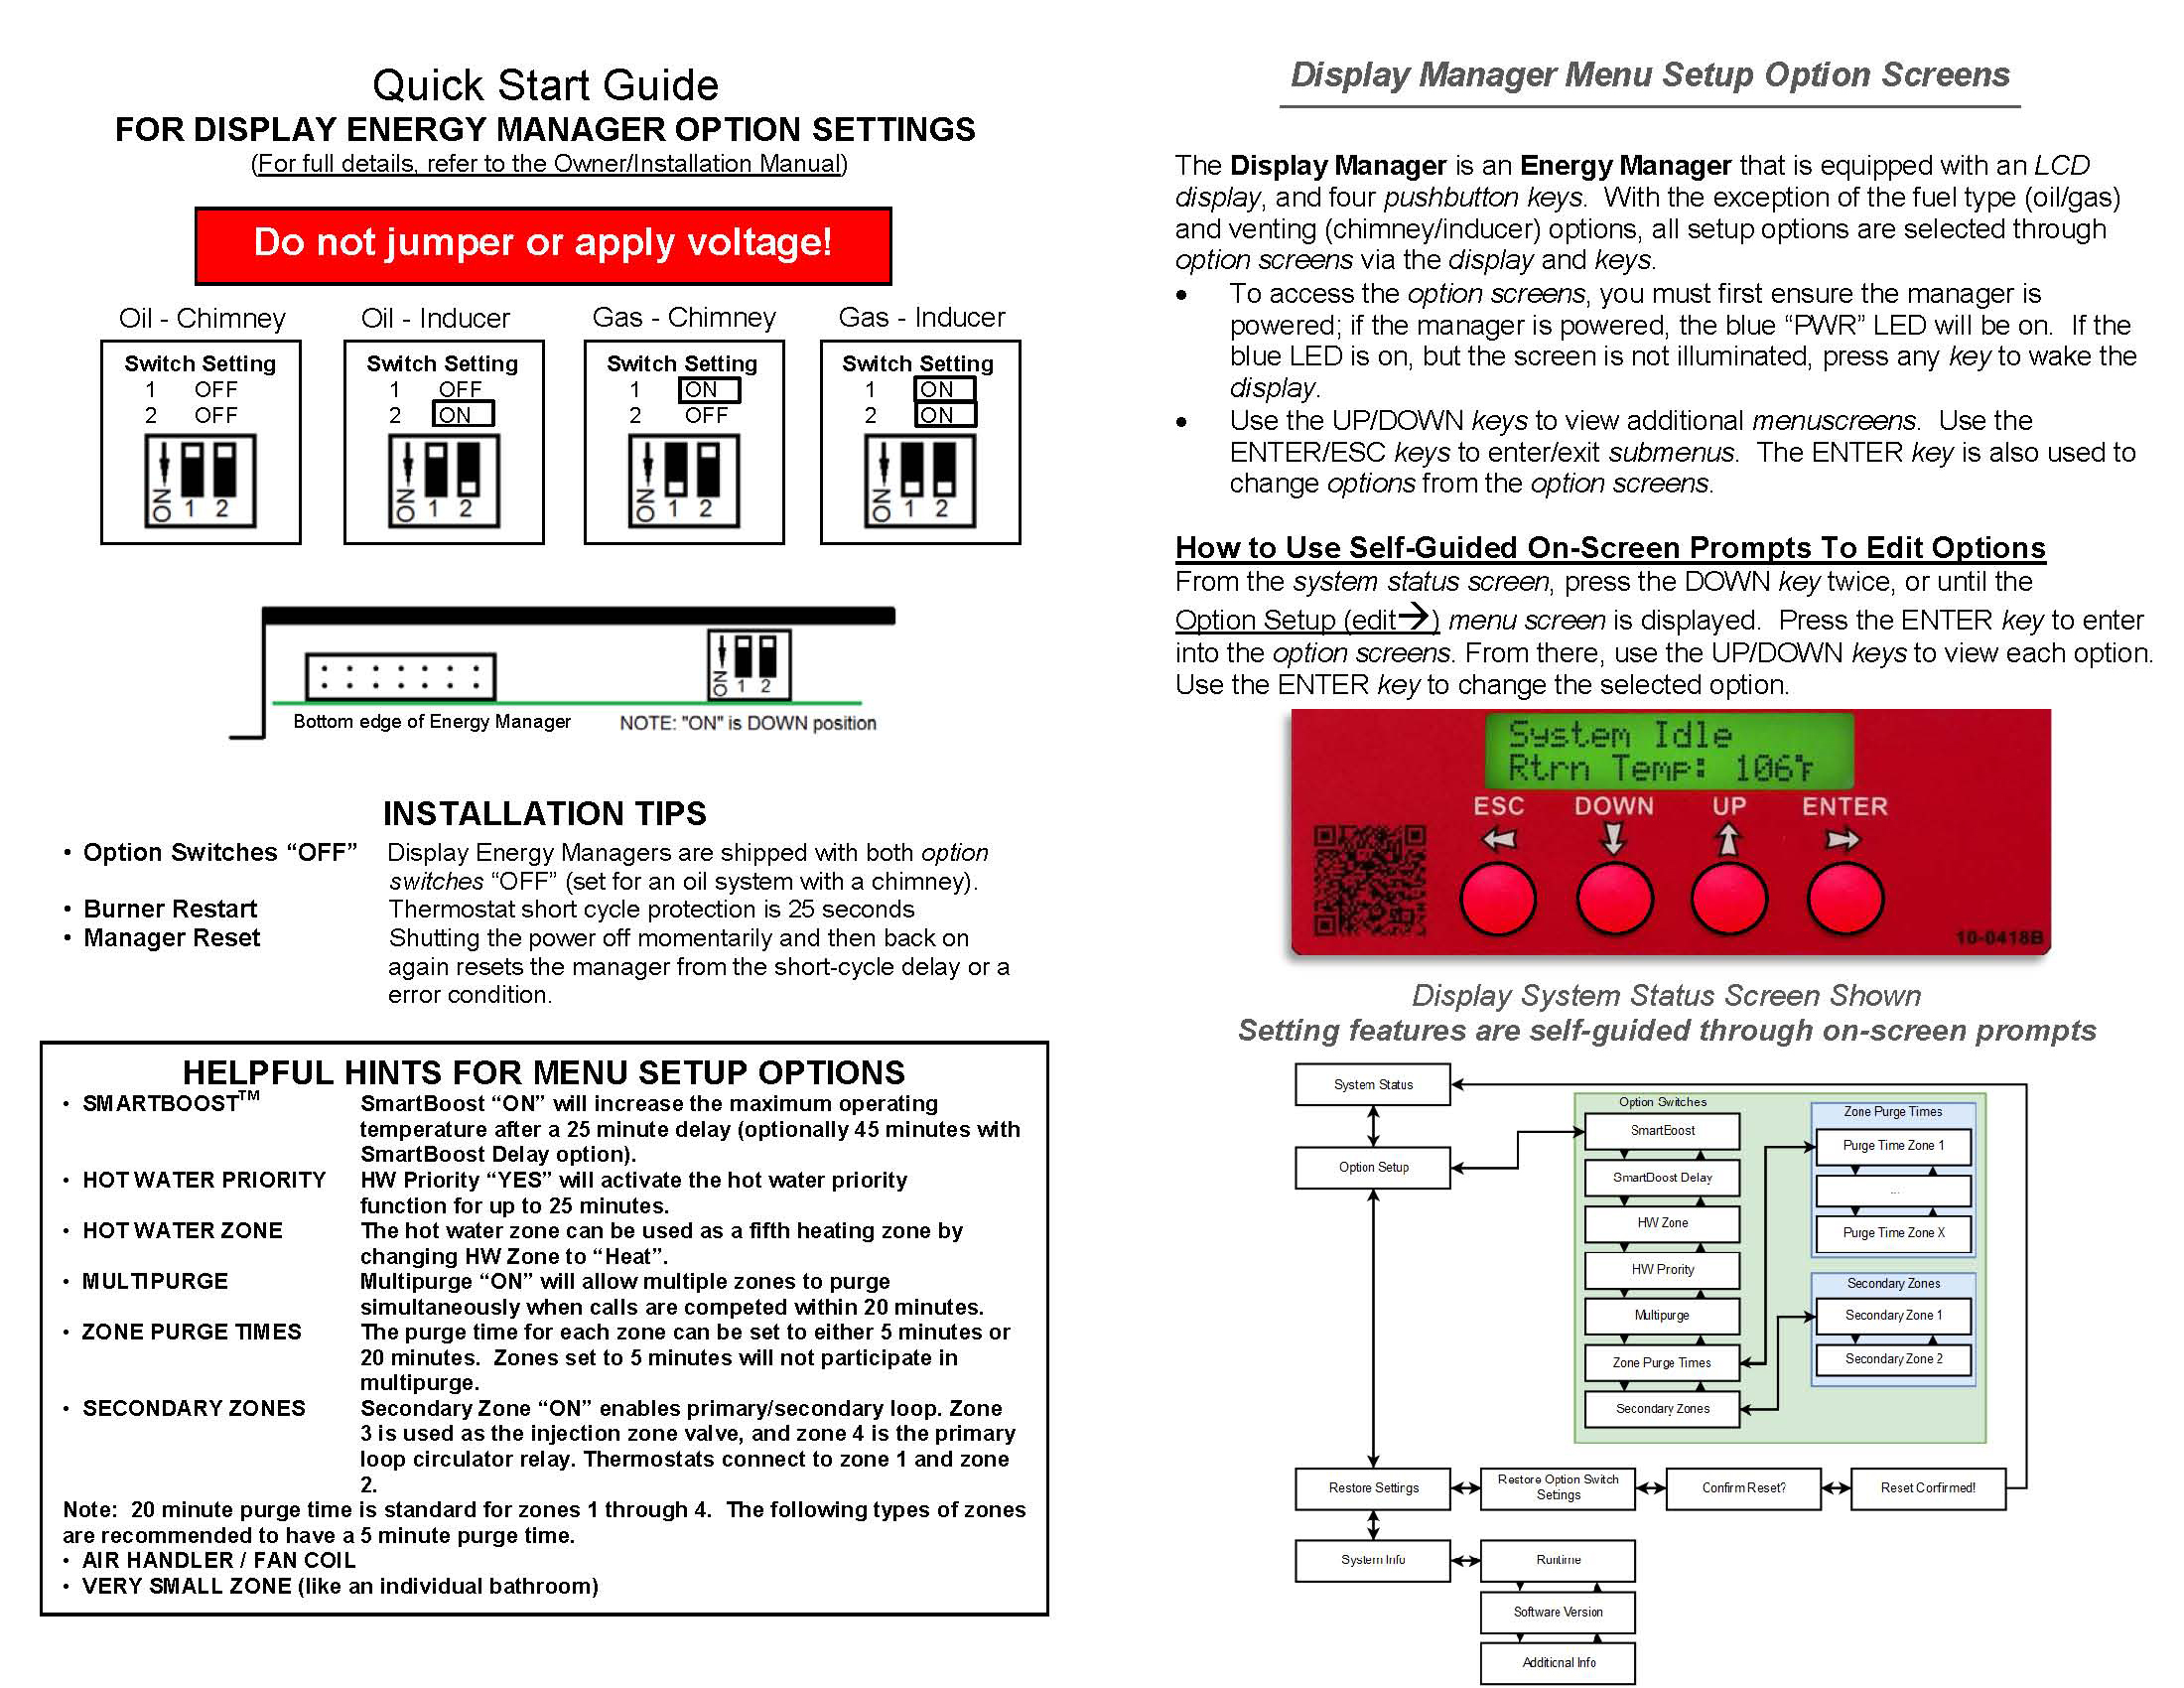 Display Energy Manager Kinetics Wiring Diagram For Boiler System View Quick Start Installation Guide